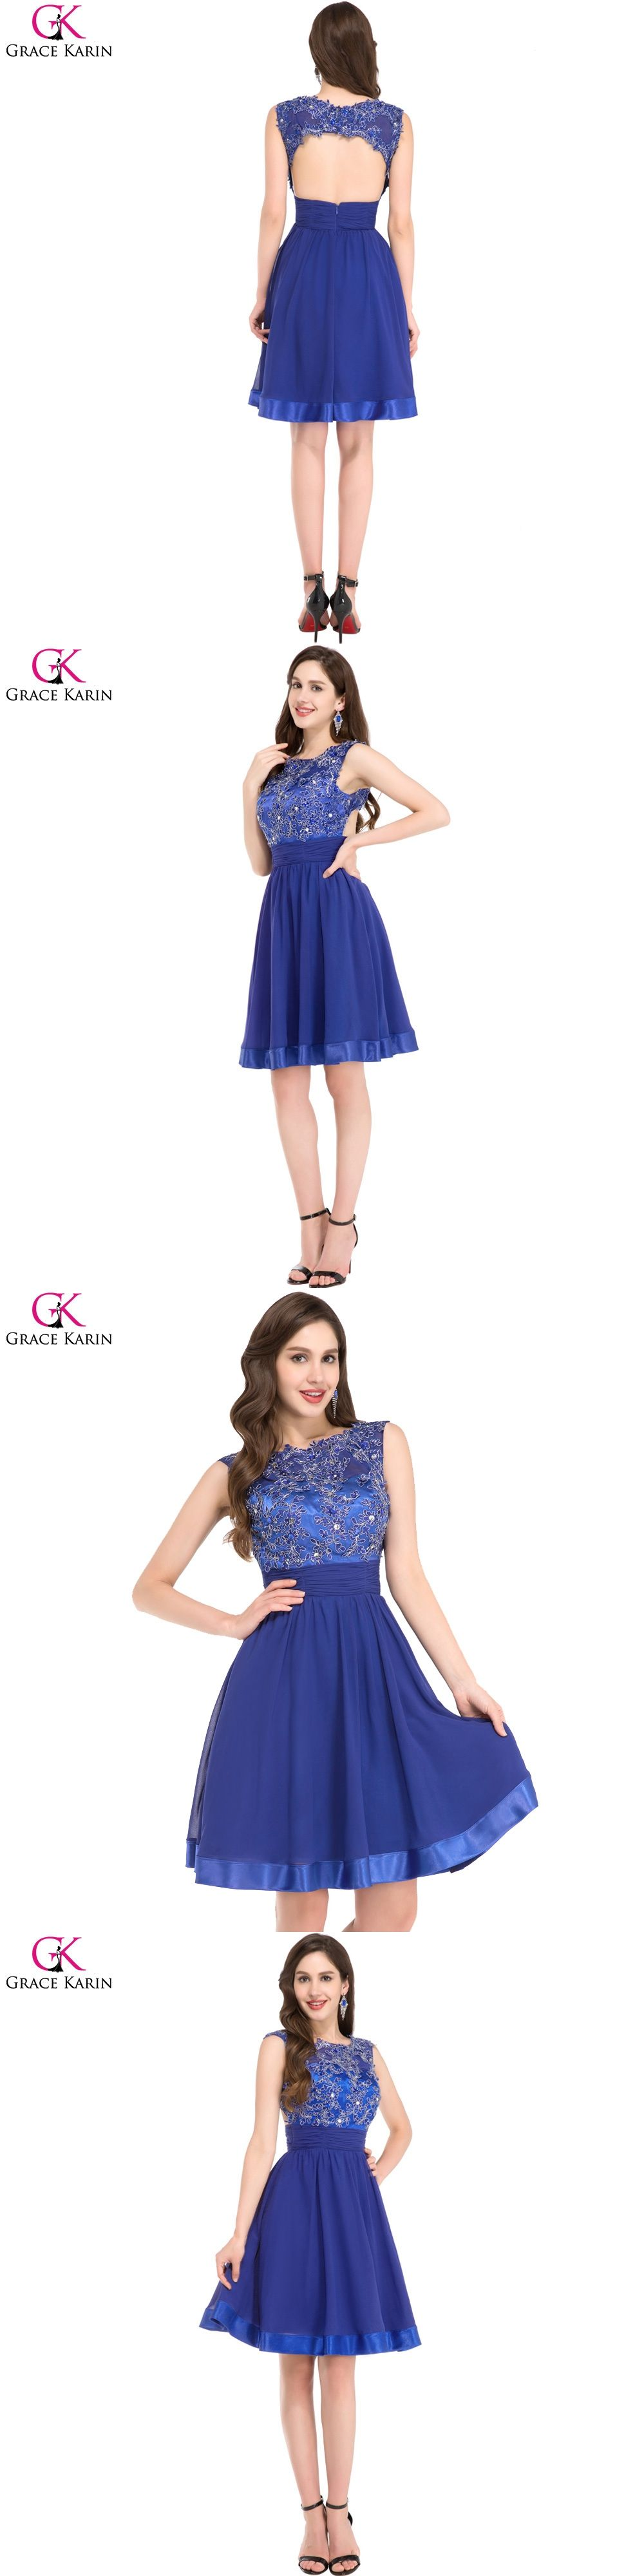 Grace karin blue lace appliques short prom dresses cap sleeve